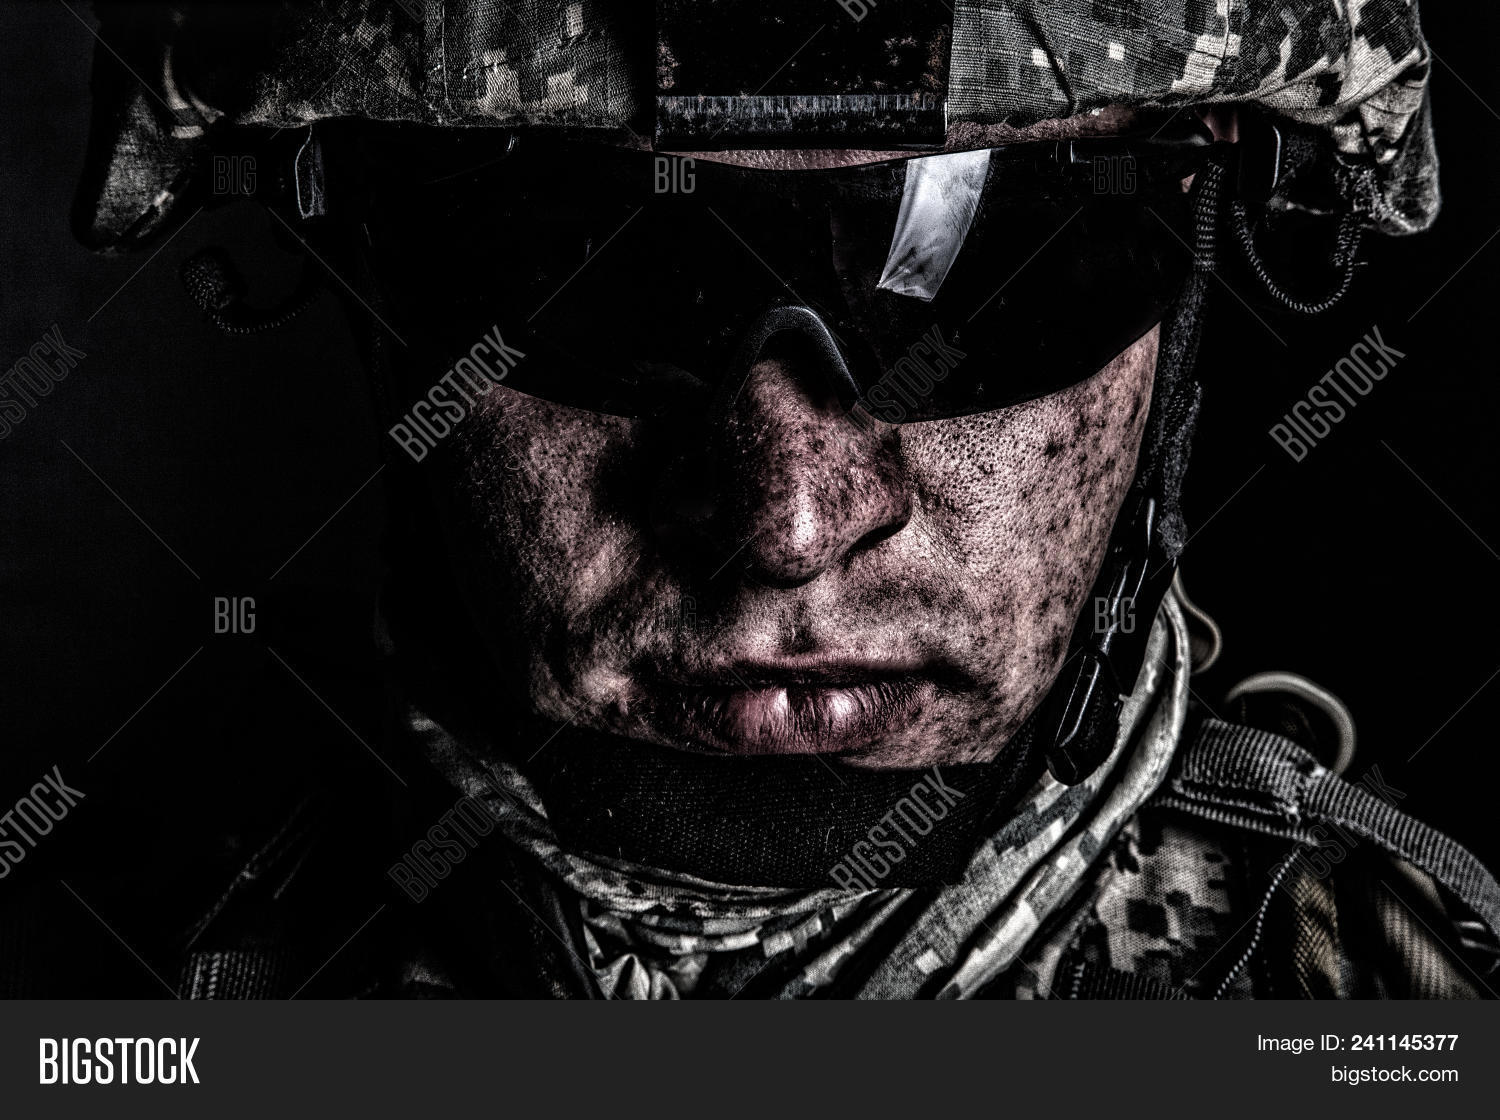 ammunition,armed,army,background,battle,black,camouflage,closeup,combat,combatant,commando,conflict,cropped,darkness,desaturated,dirt,dirty,face,fighter,force,glasses,guard,helmet,infantry,infantryman,man,marine,military,mission,mud,night,portrait,professional,raid,ranger,security,service,serviceman,shooter,soldier,special,sunglasses,tactical,troops,uniform,veteran,war,warfare,warrior